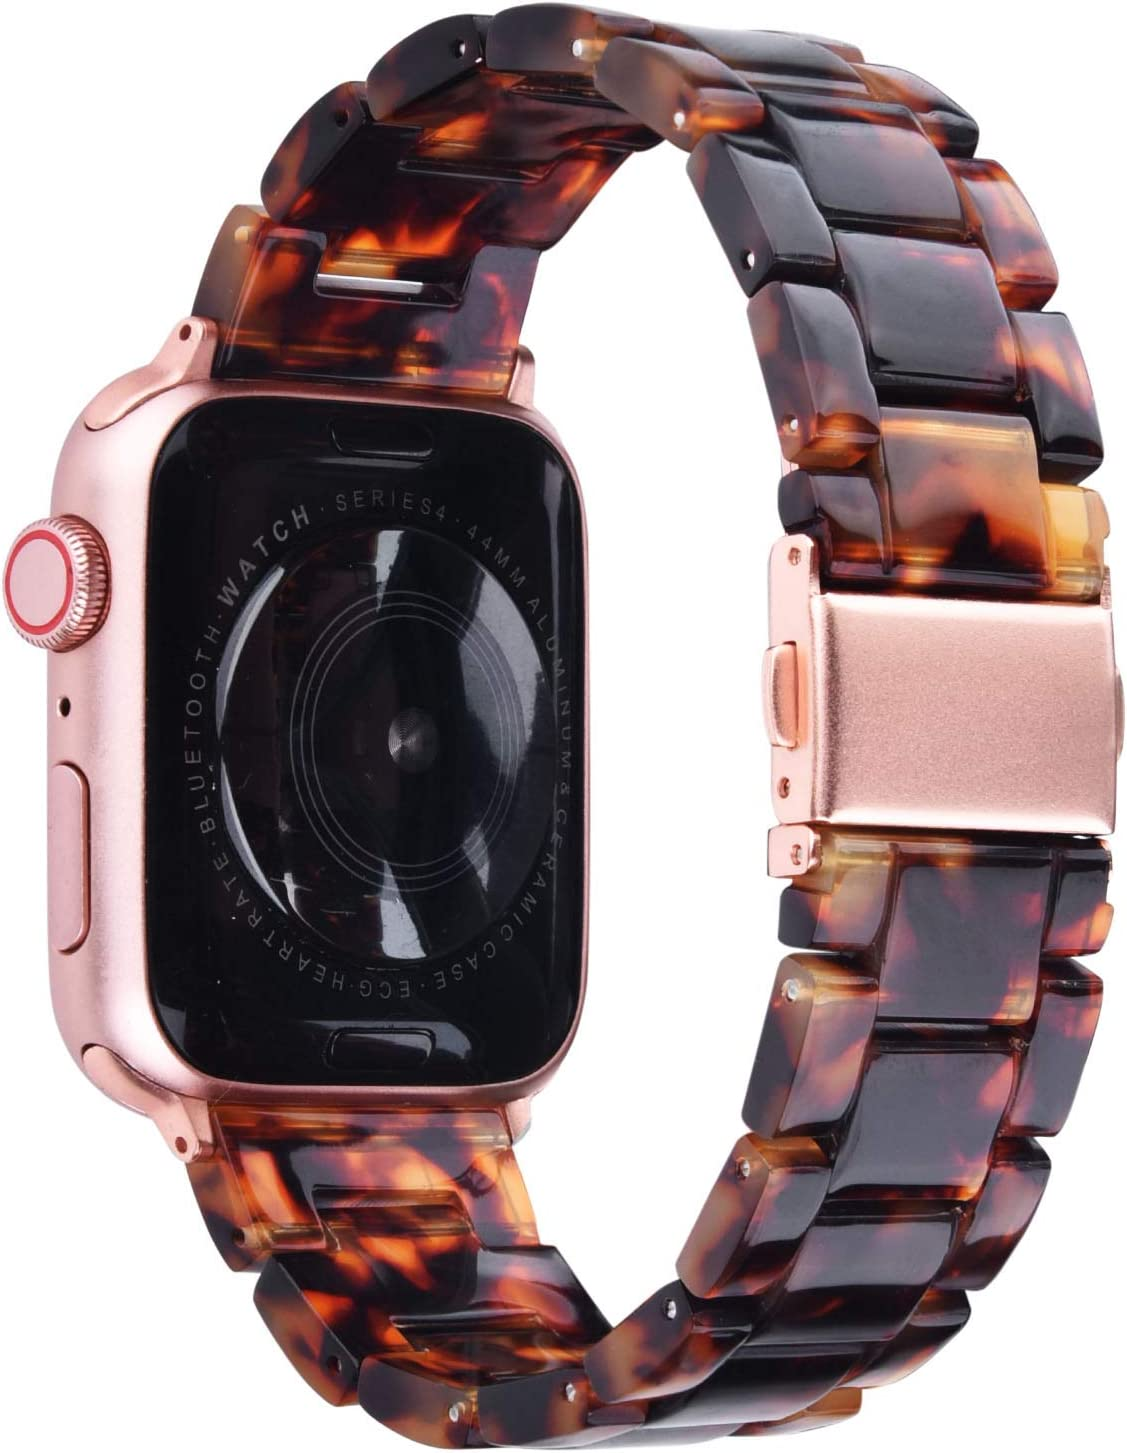 V-MORO Resin Strap Compatible with Apple Watch Band 42mm 44mm Series 5/4/3/2/1 Women Men with Stainless Steel Buckle, Apple iWatch Replacement Wristband Bracelet(Tortoiseshell, 42mm/44mm)